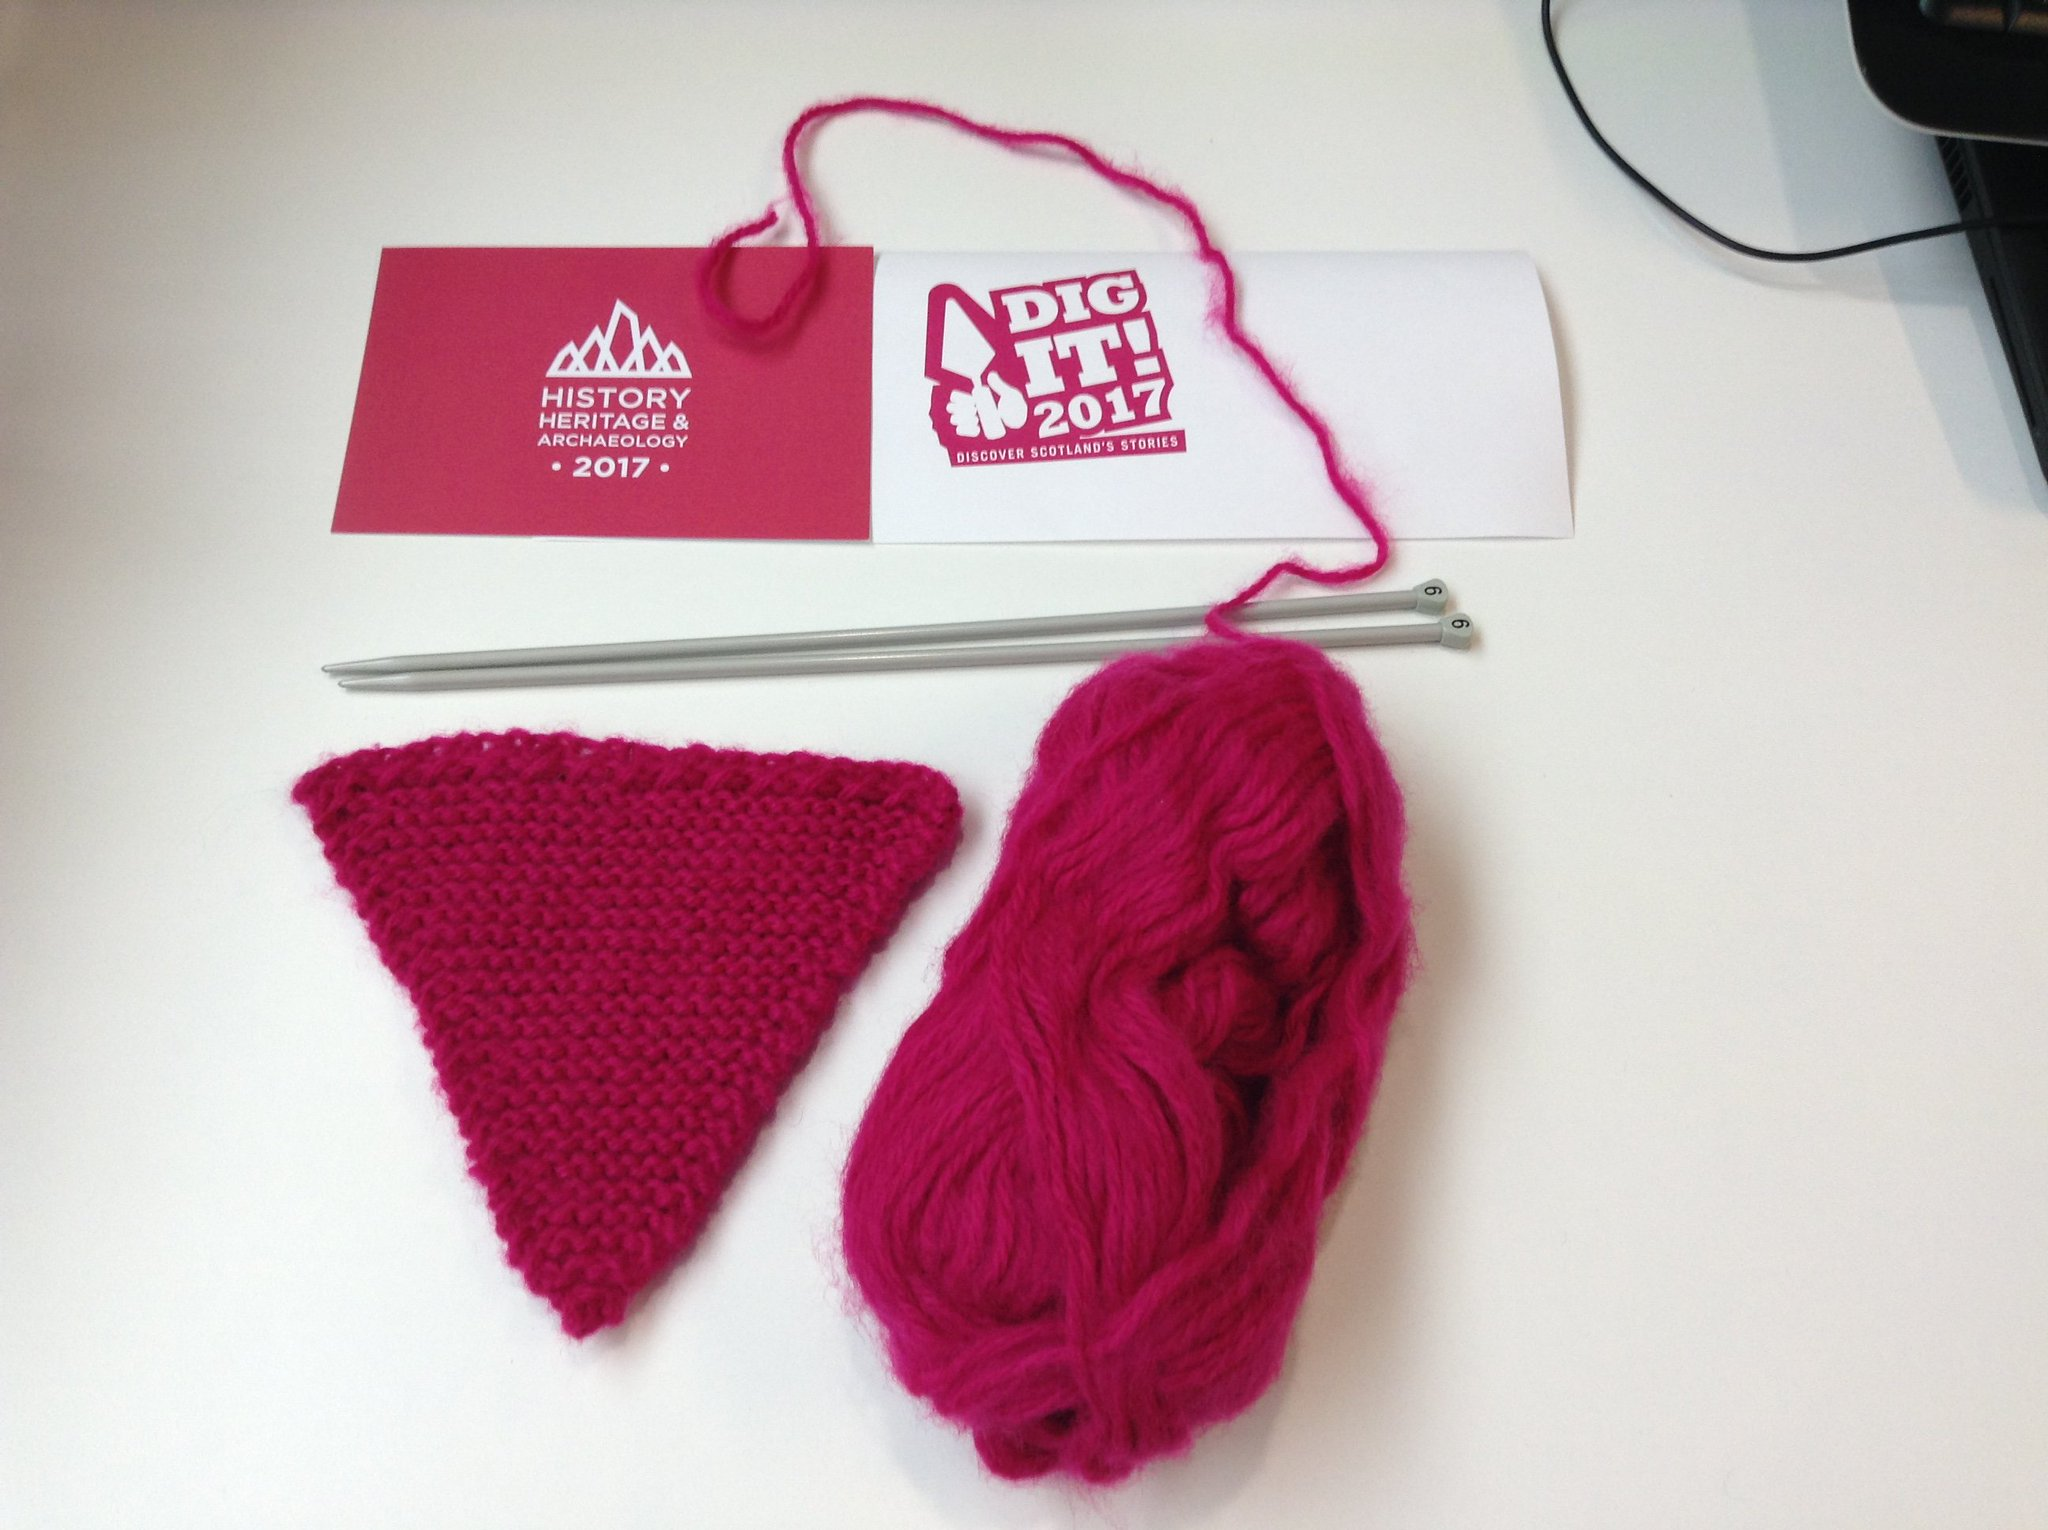 Operation #knitnewlanark begun with bunting in @DigIt2017 pink. Or is that @FestofMuseums pink? https://t.co/KgI1uw1b5A